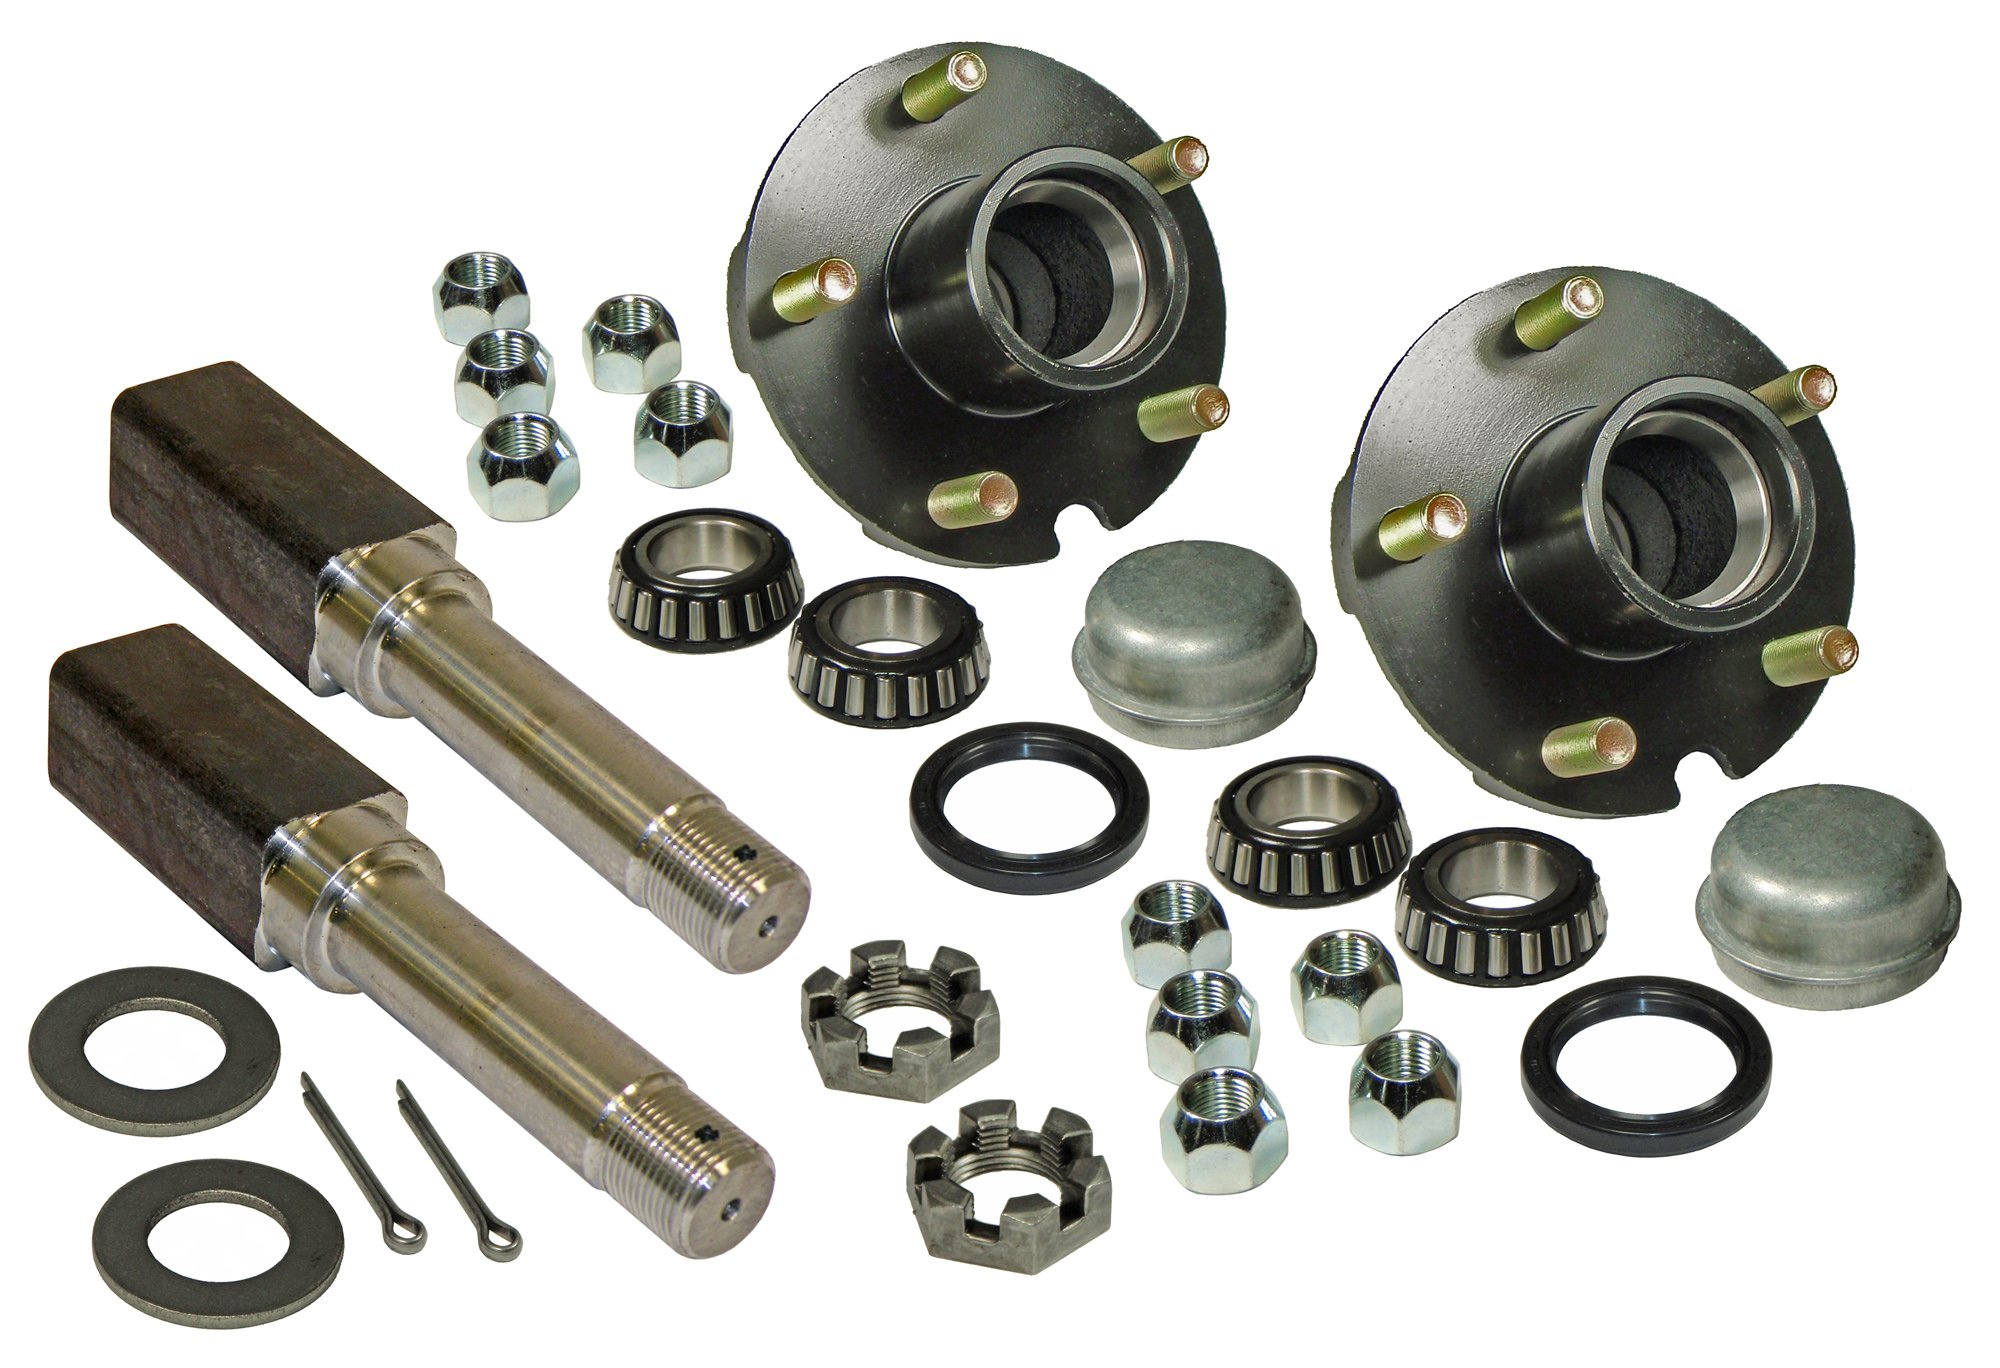 Rigid Hitch Pair of 5-Bolt On 4-1/2 Inch Hub Assembly (AKSQ-2200545) Includes (2) Square Shaft 1-1/16 Inch Straight Spindles & Bearings by Rigid Hitch